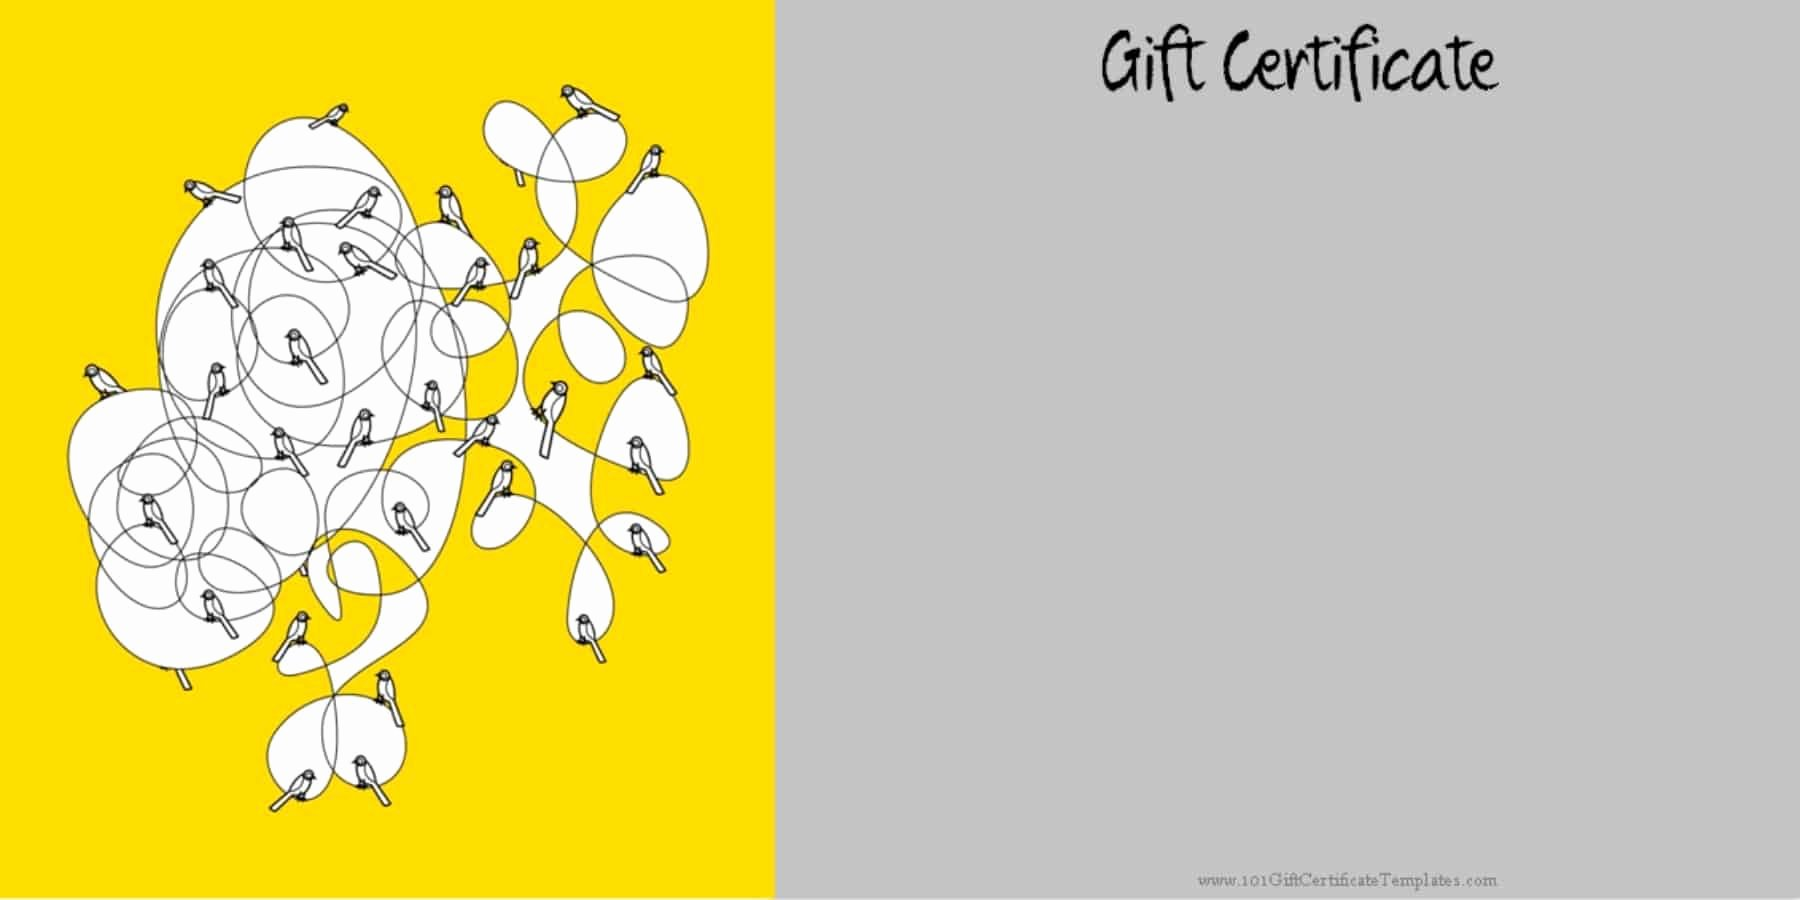 Powerpoint Gift Certificate Template Best Of Printable Gift Certificate Templates